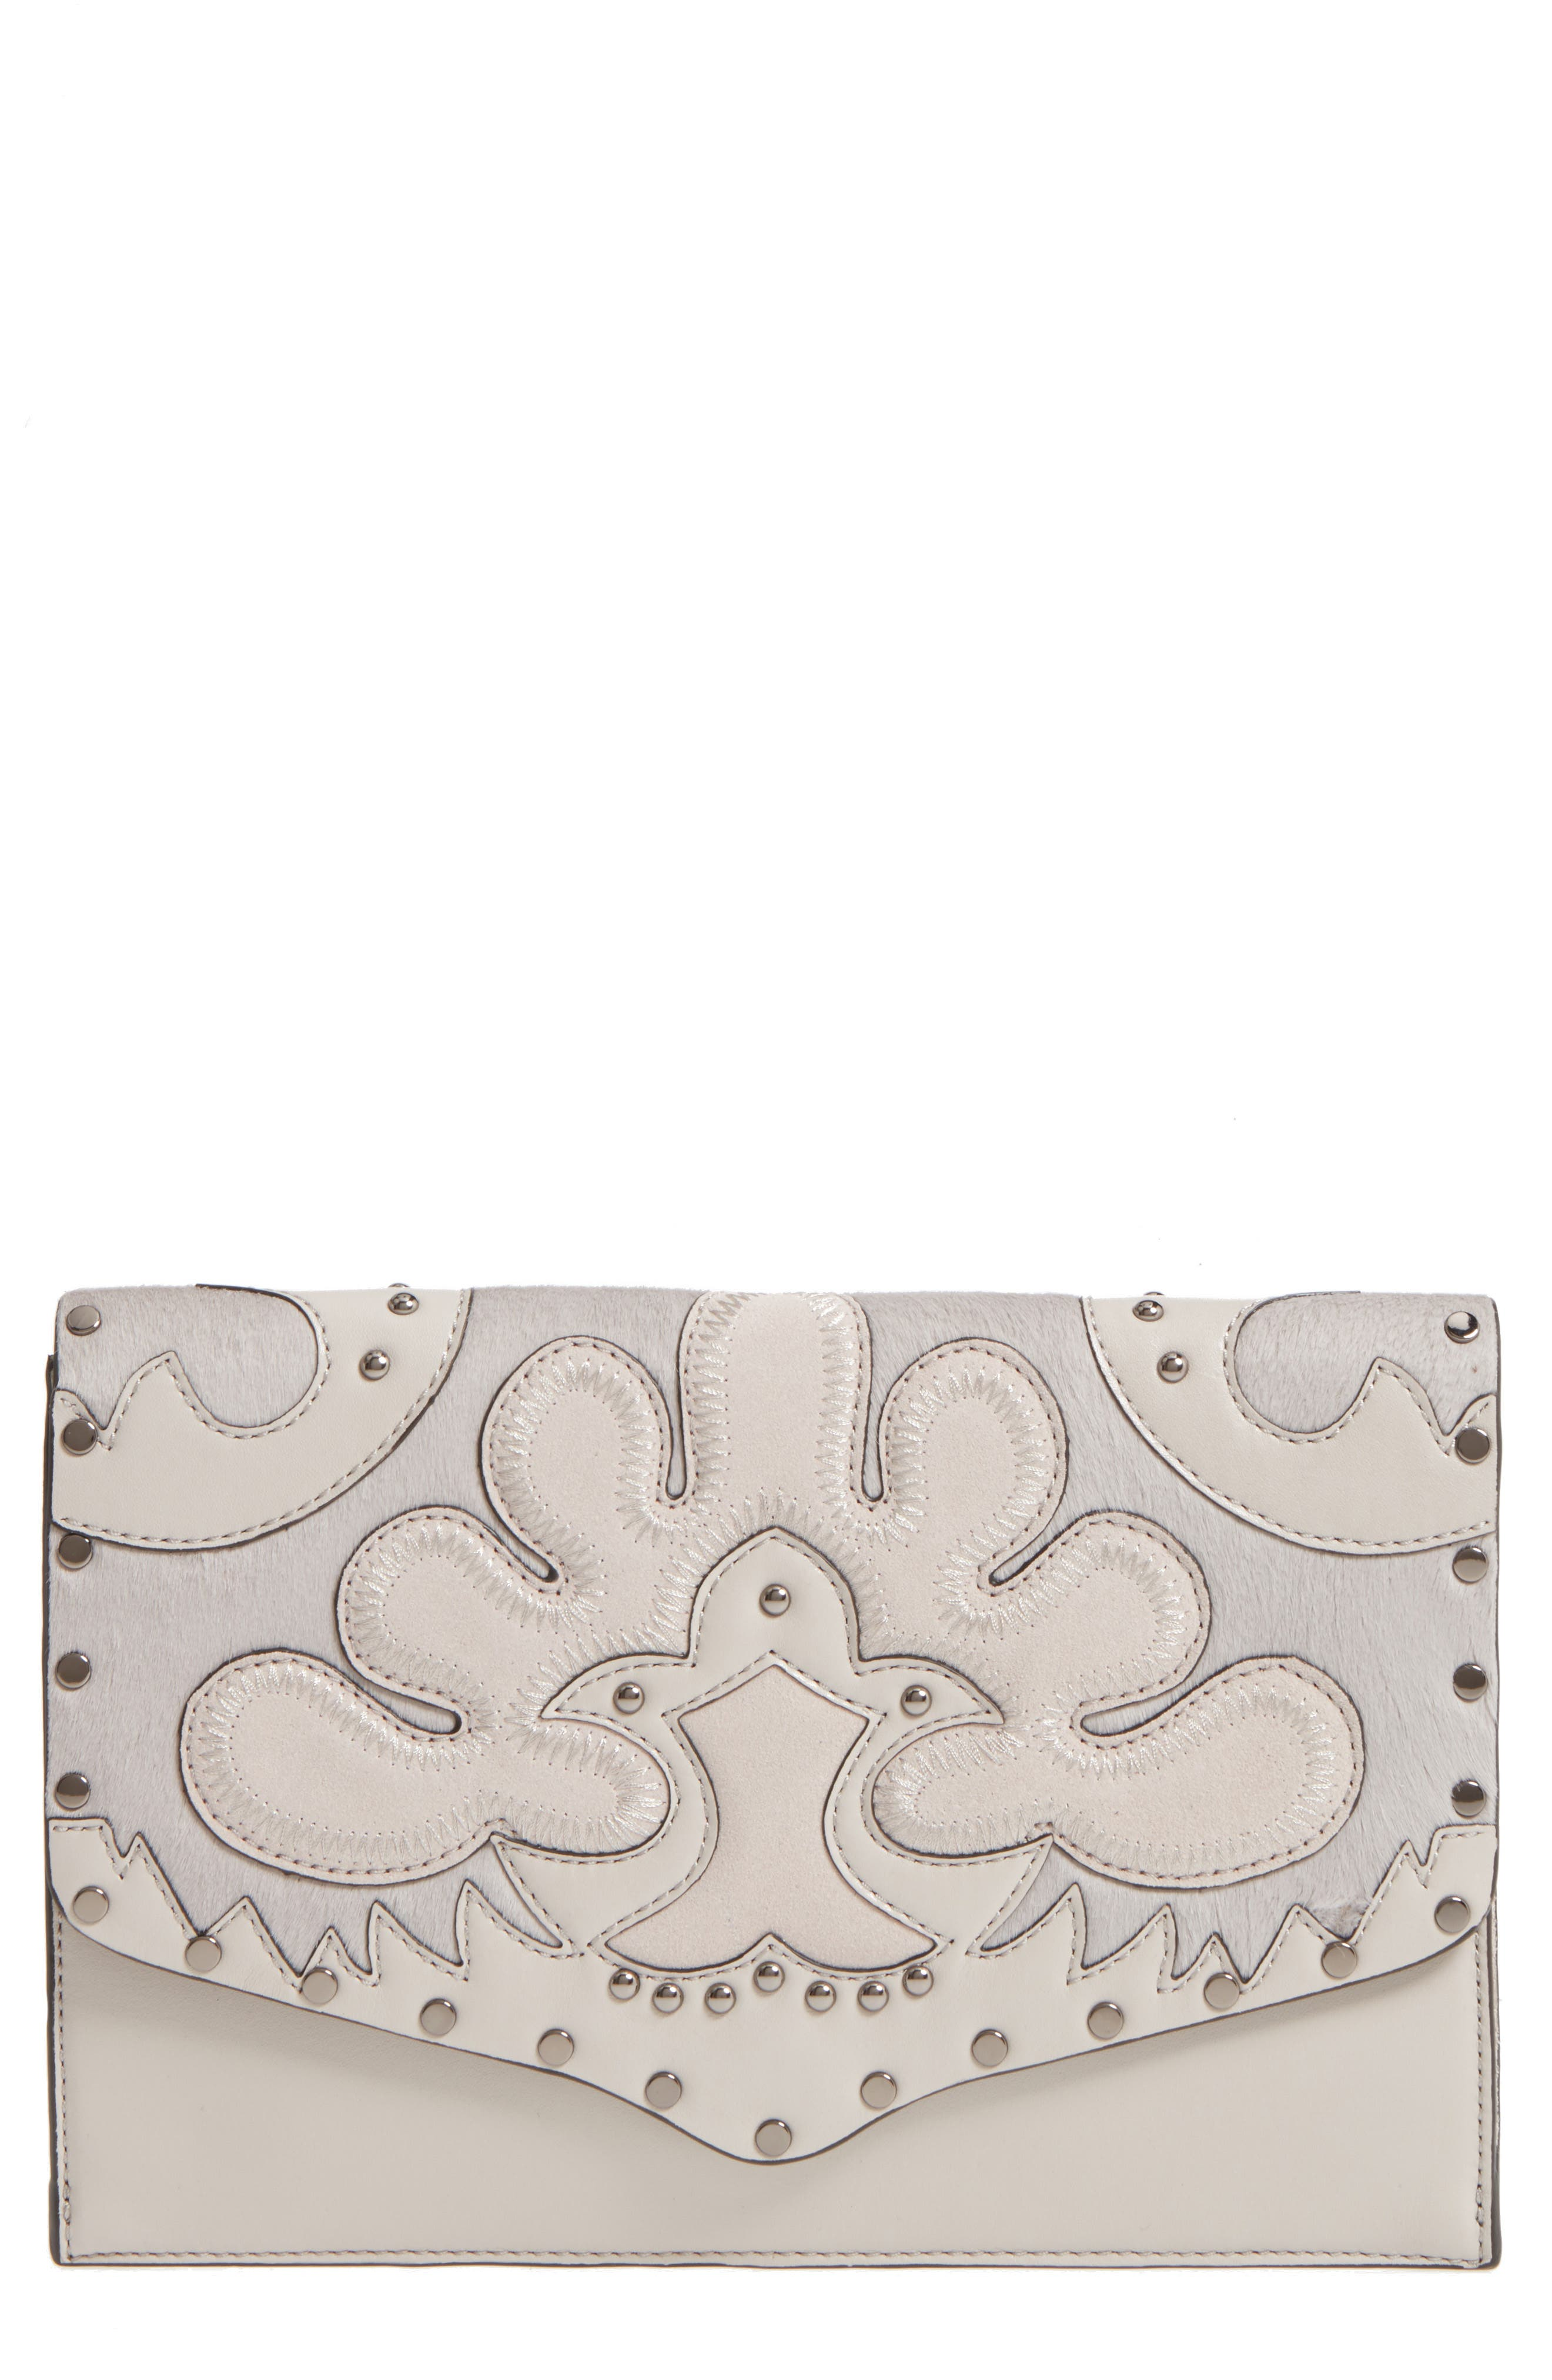 Rebecca Minkoff Biker Genuine Calf Hair Clutch